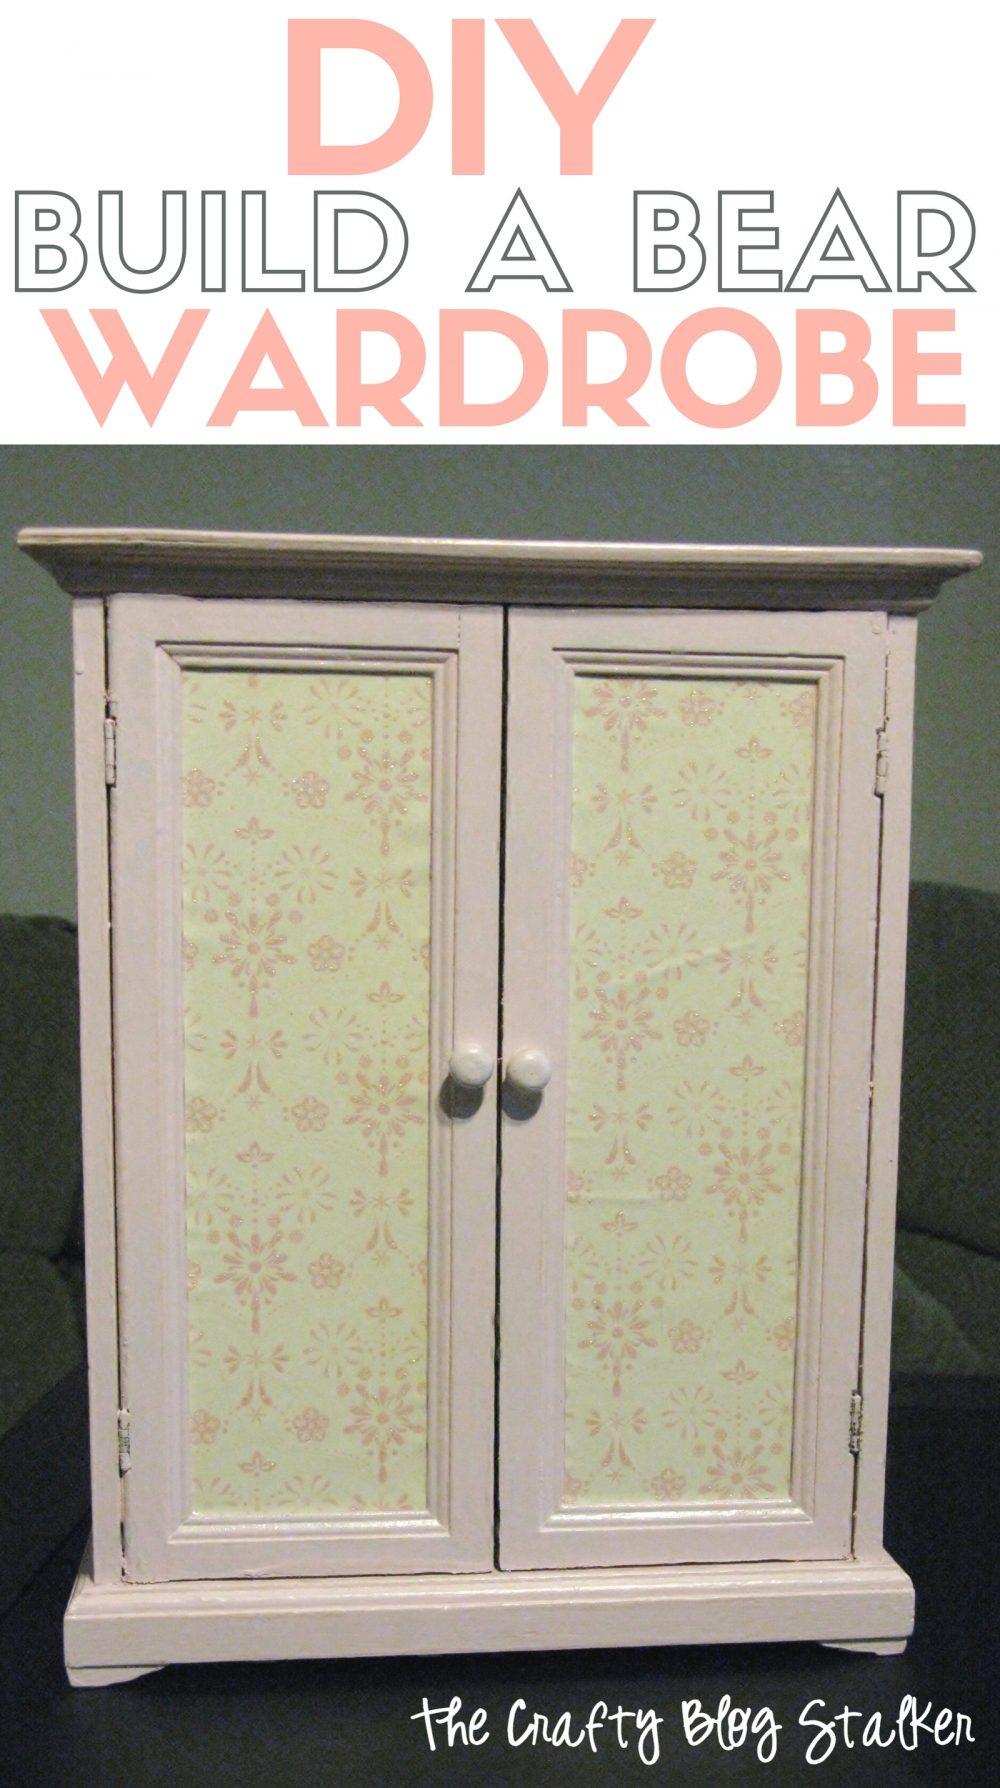 How To Build A Bear Diy Toy Wardrobe The Crafty Blog Stalker